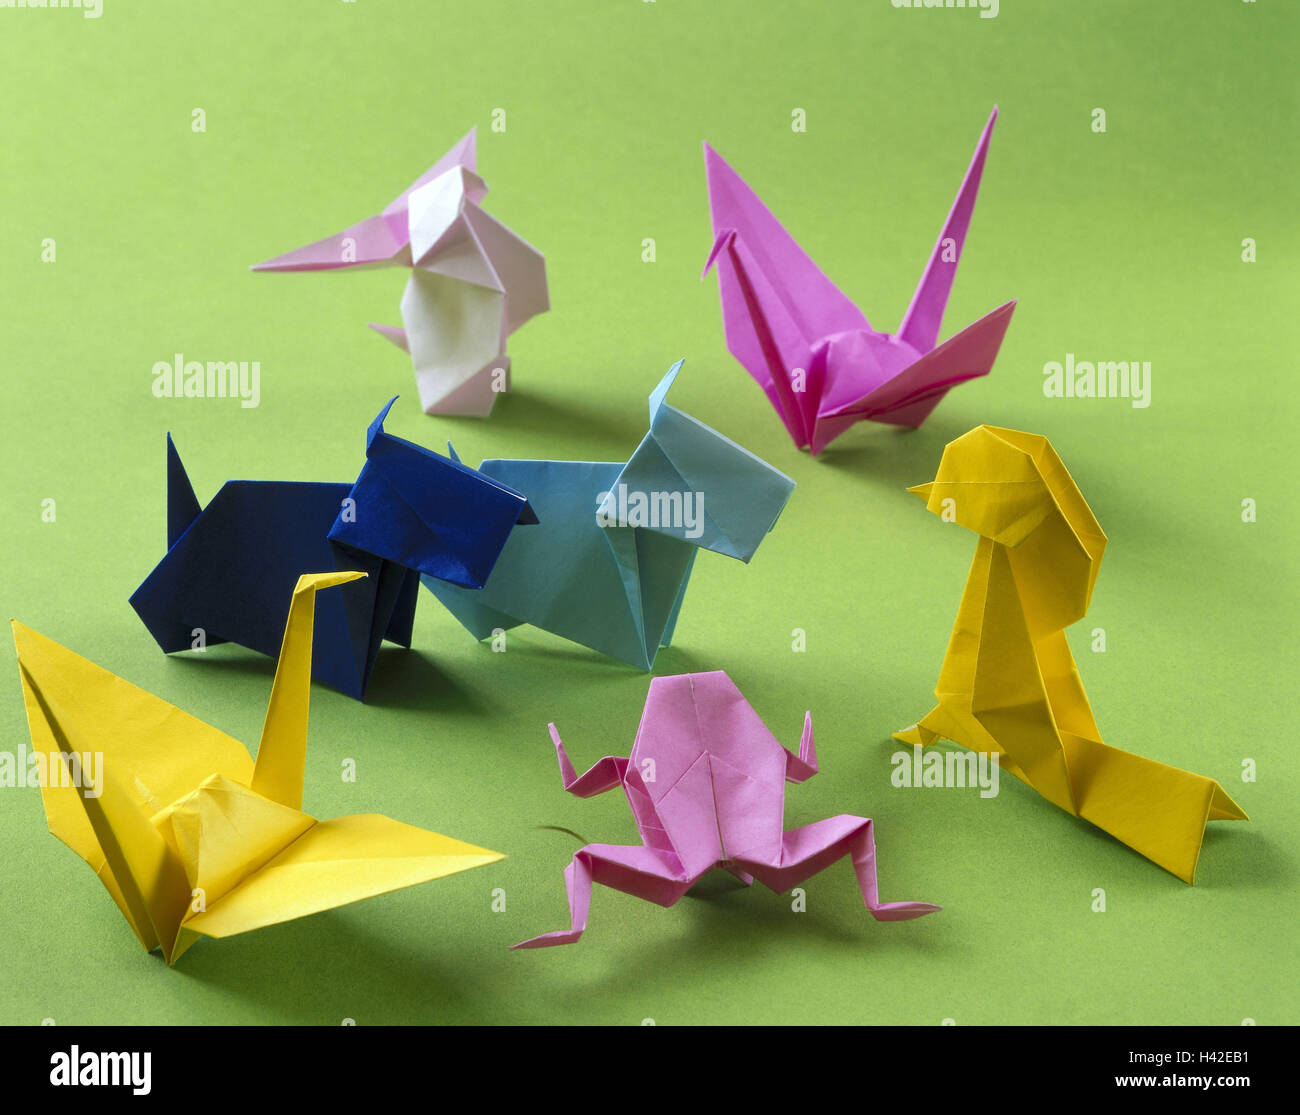 Origami Japanese Paper Folding Art Animals Differently Brightly Japan Figures Mythical Seven Colourfully Fold Skill